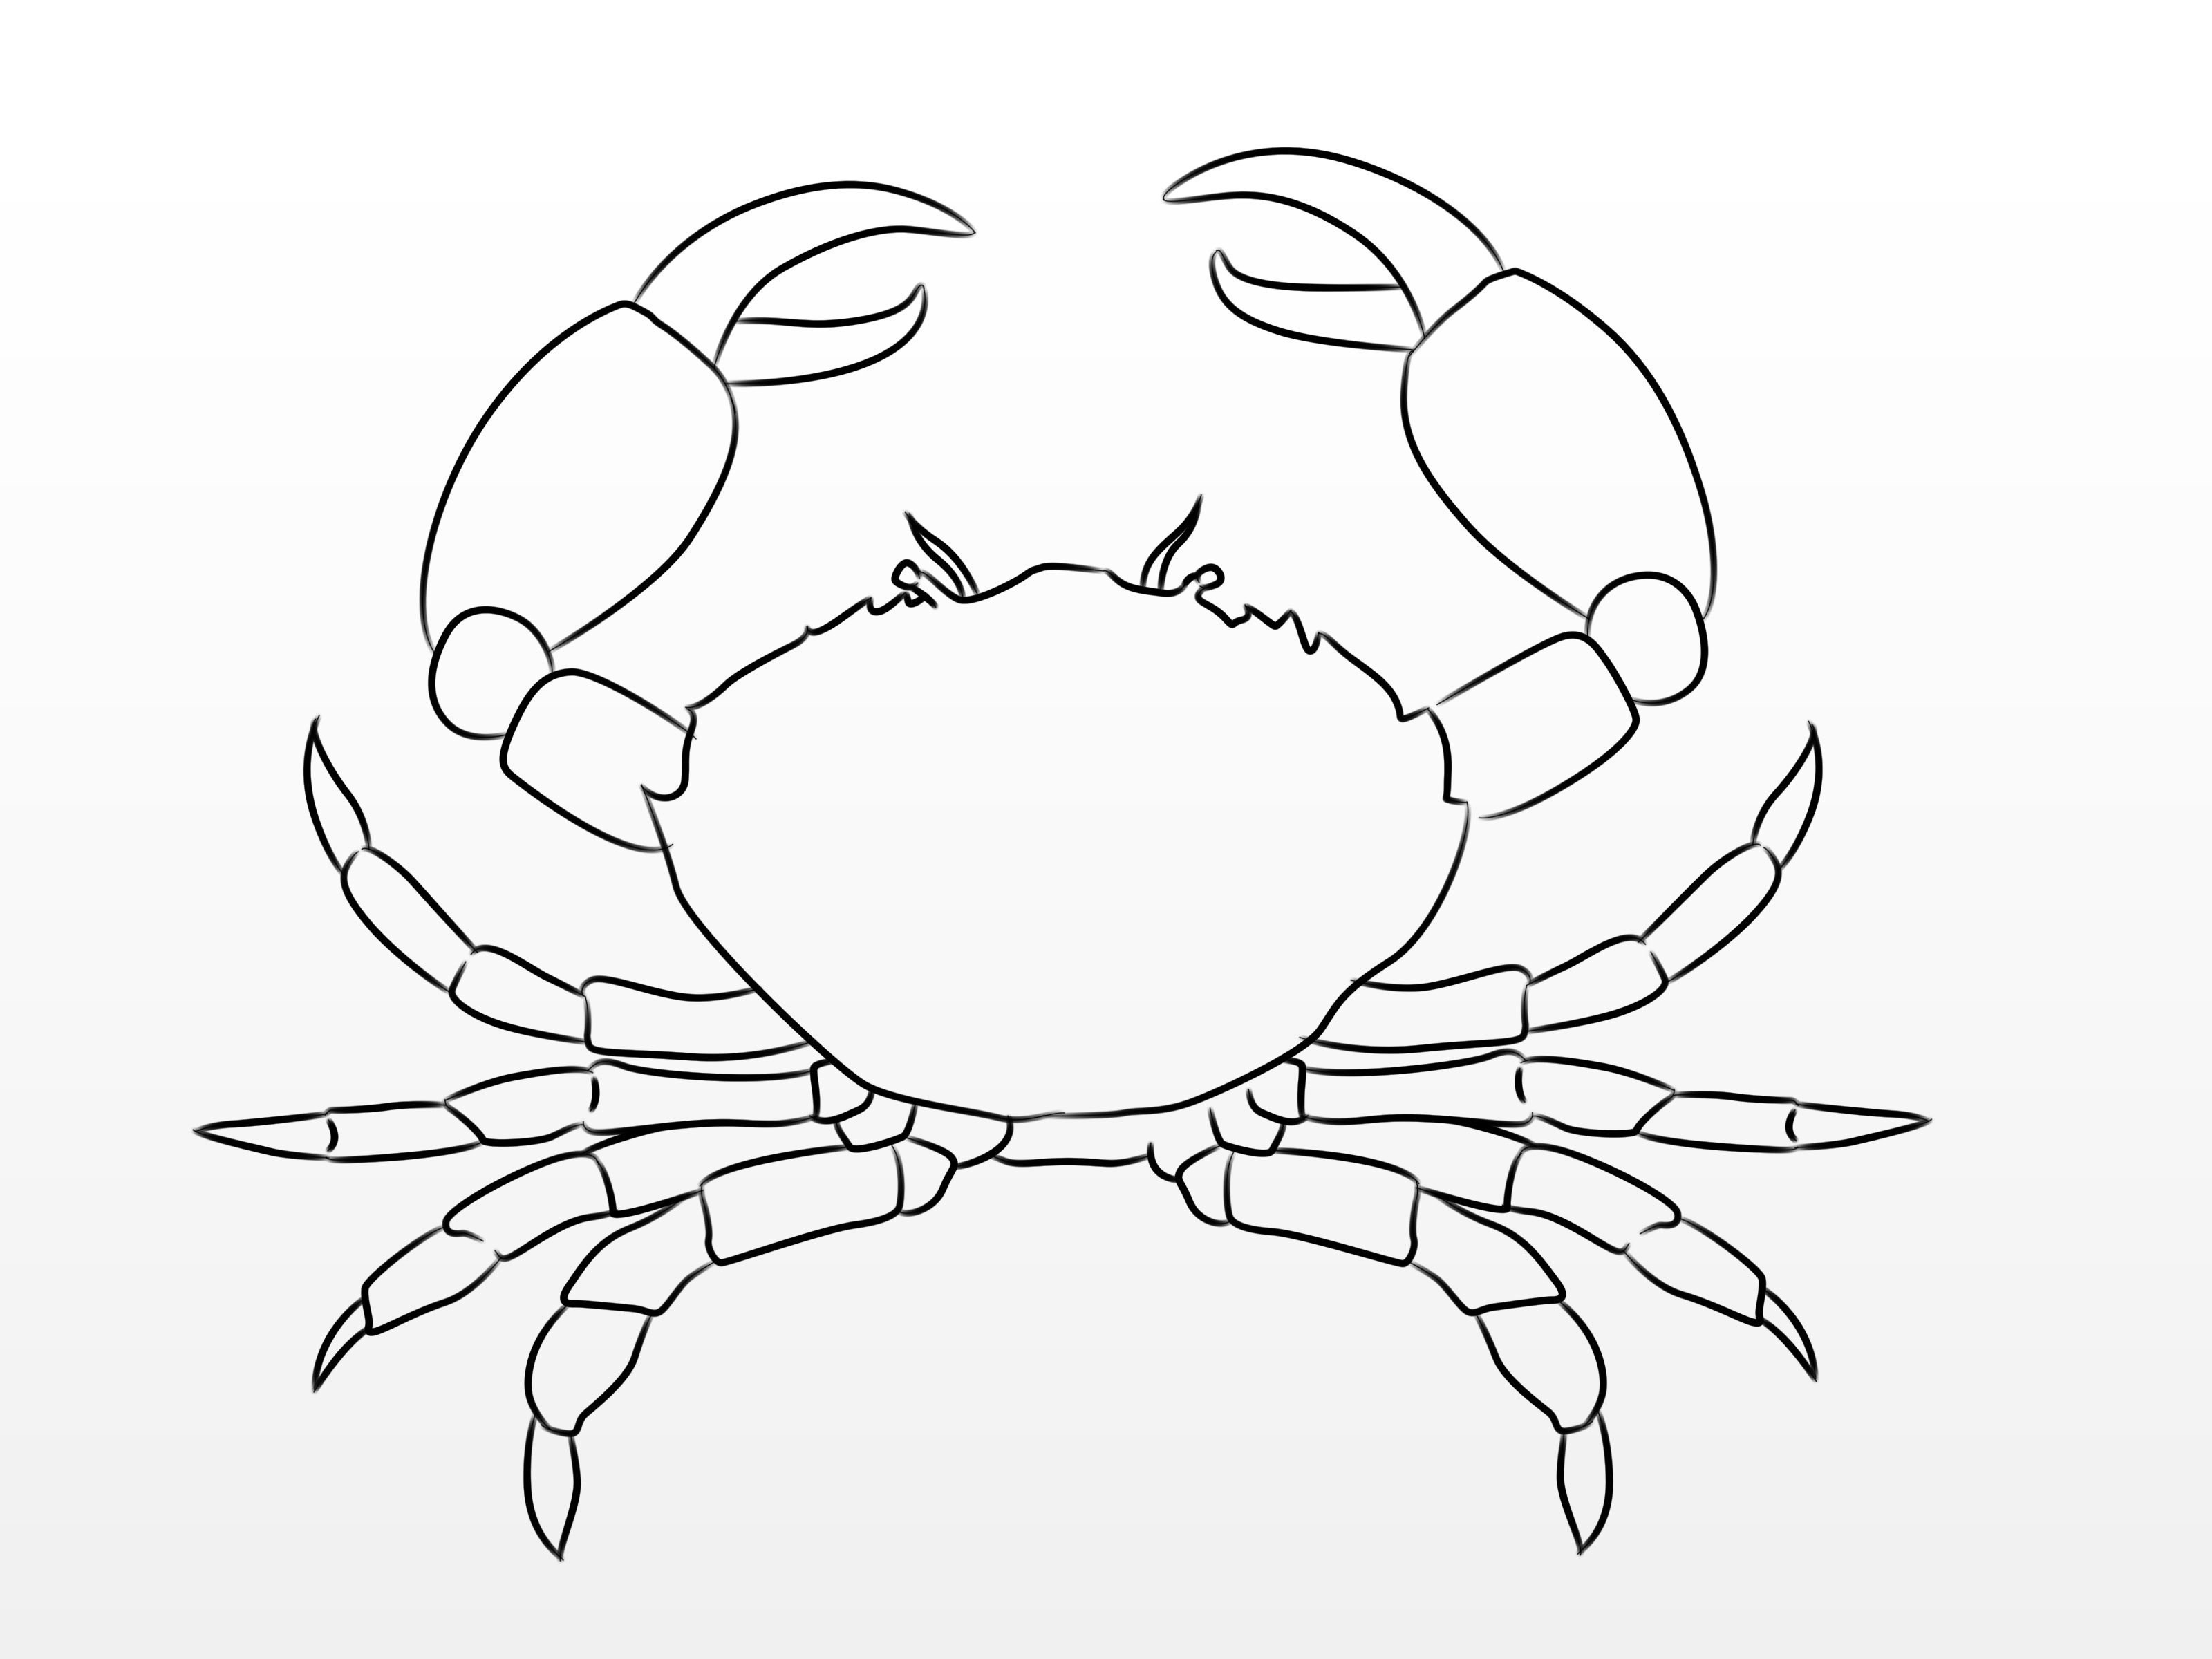 Crab Claw Drawing At Getdrawingscom Free For Personal Use Crab